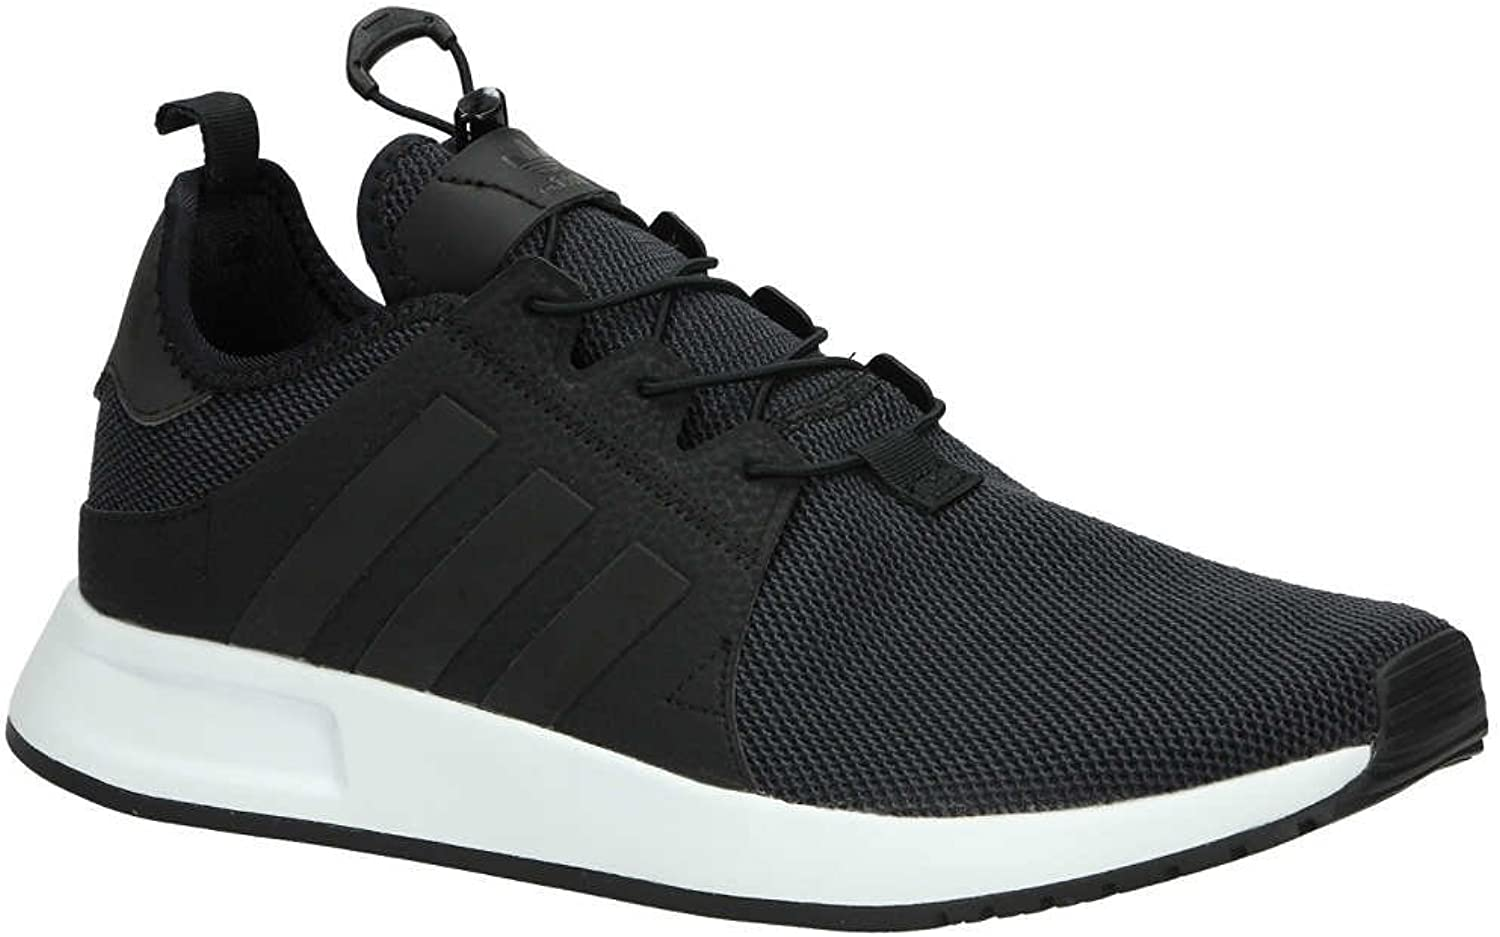 Adidas Unisex Adults' X_PLR Bass Trainers